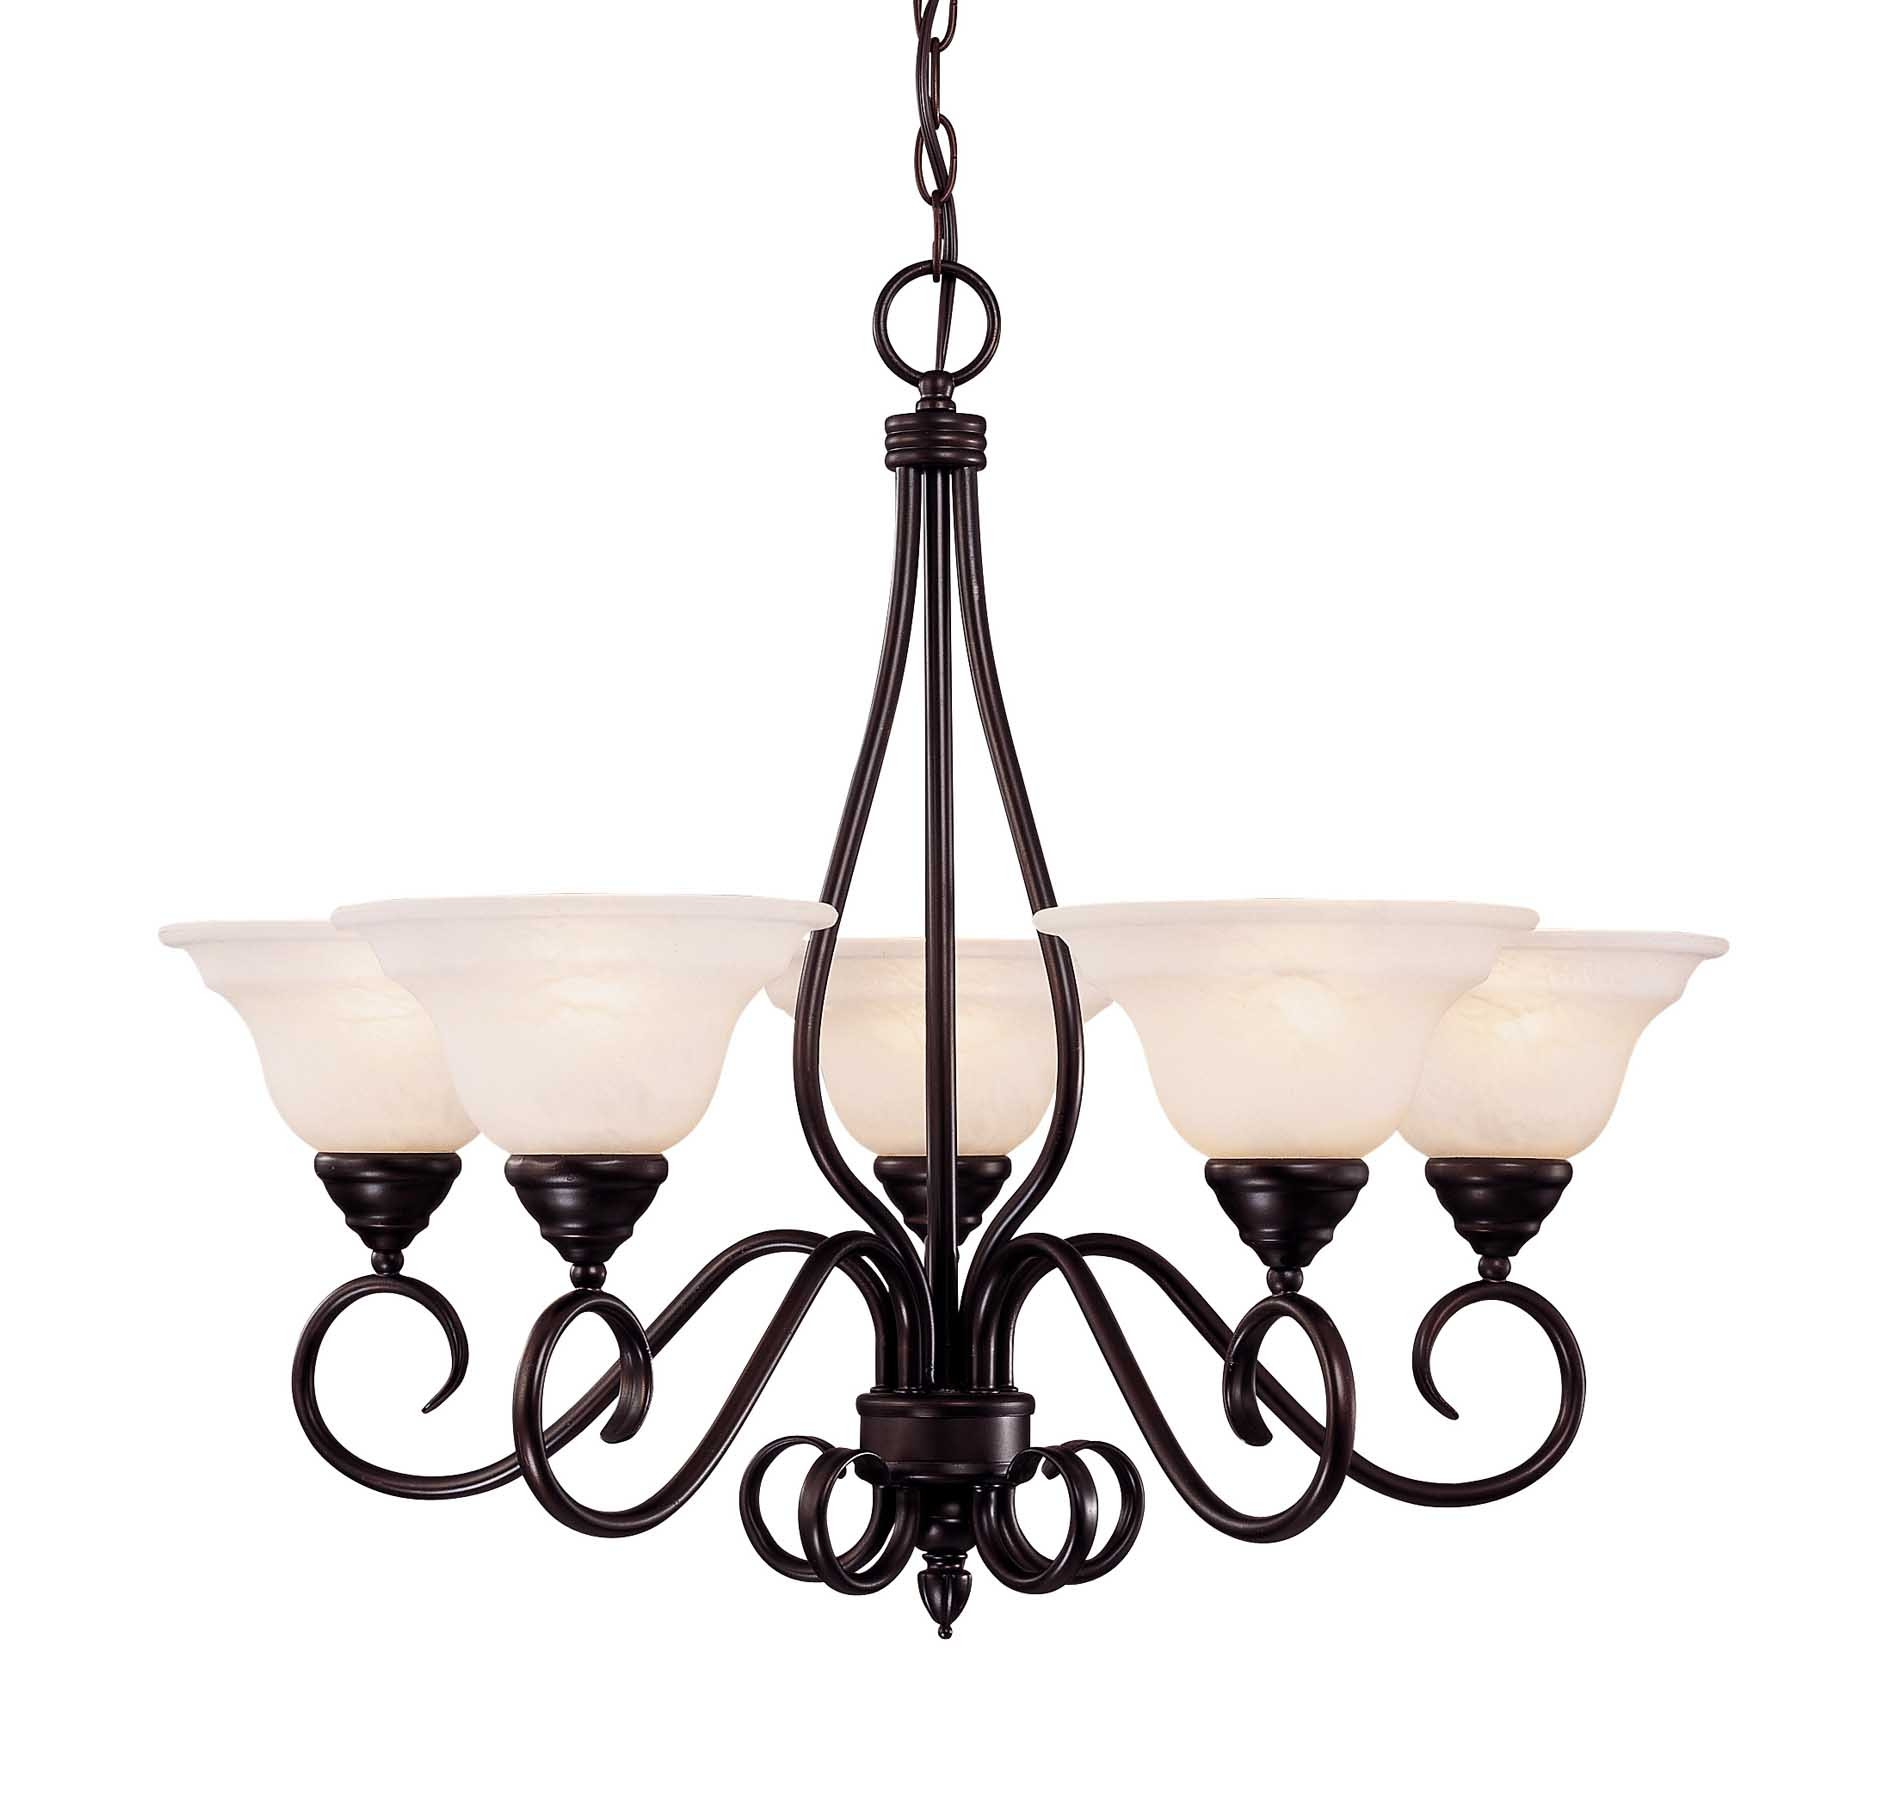 House Kp 94 5 13 Oxford 5 Light Chandelier In English Bronze Regarding Savoy House Chandeliers (Image 5 of 25)